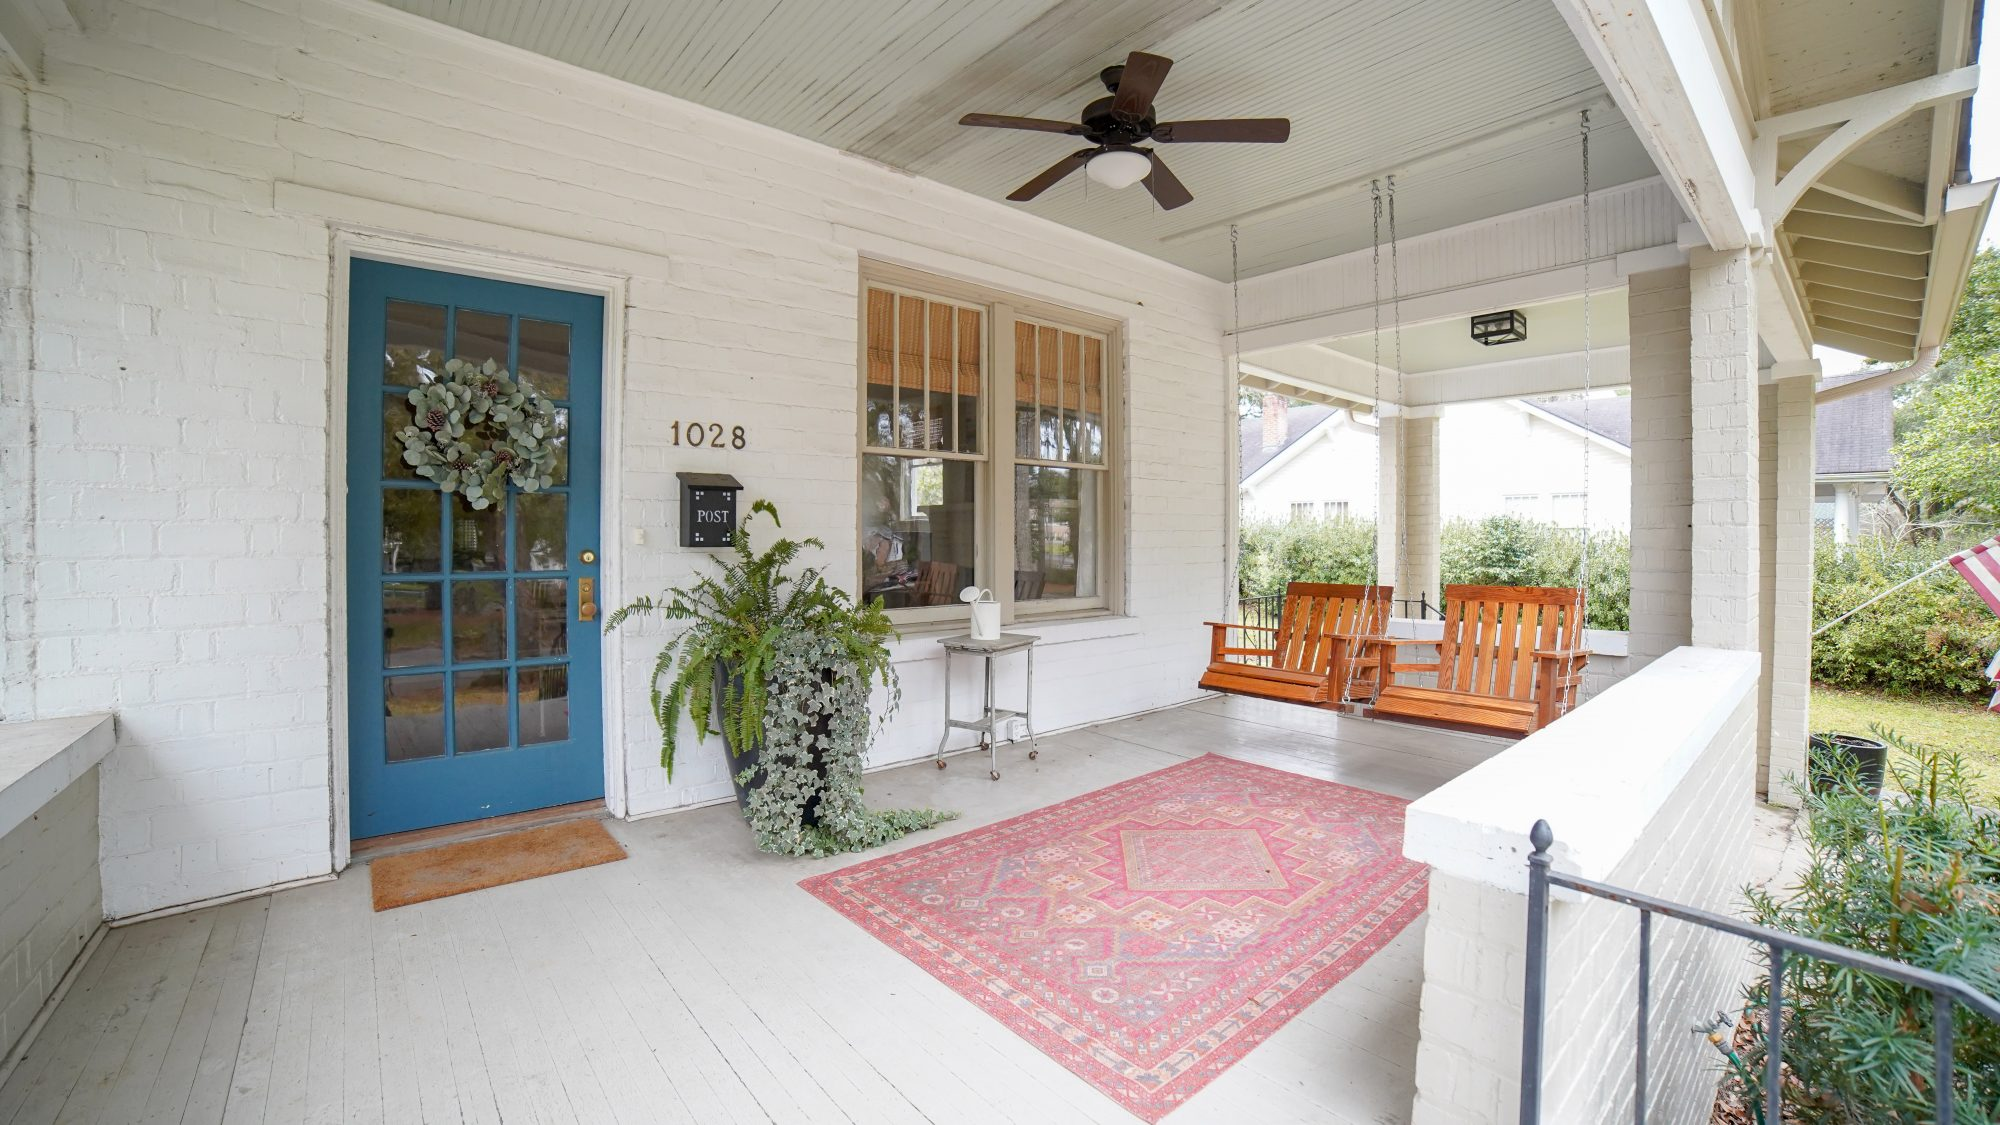 Home Town Laurel Mississippi Home for Sale Season 2 Cottage Porch